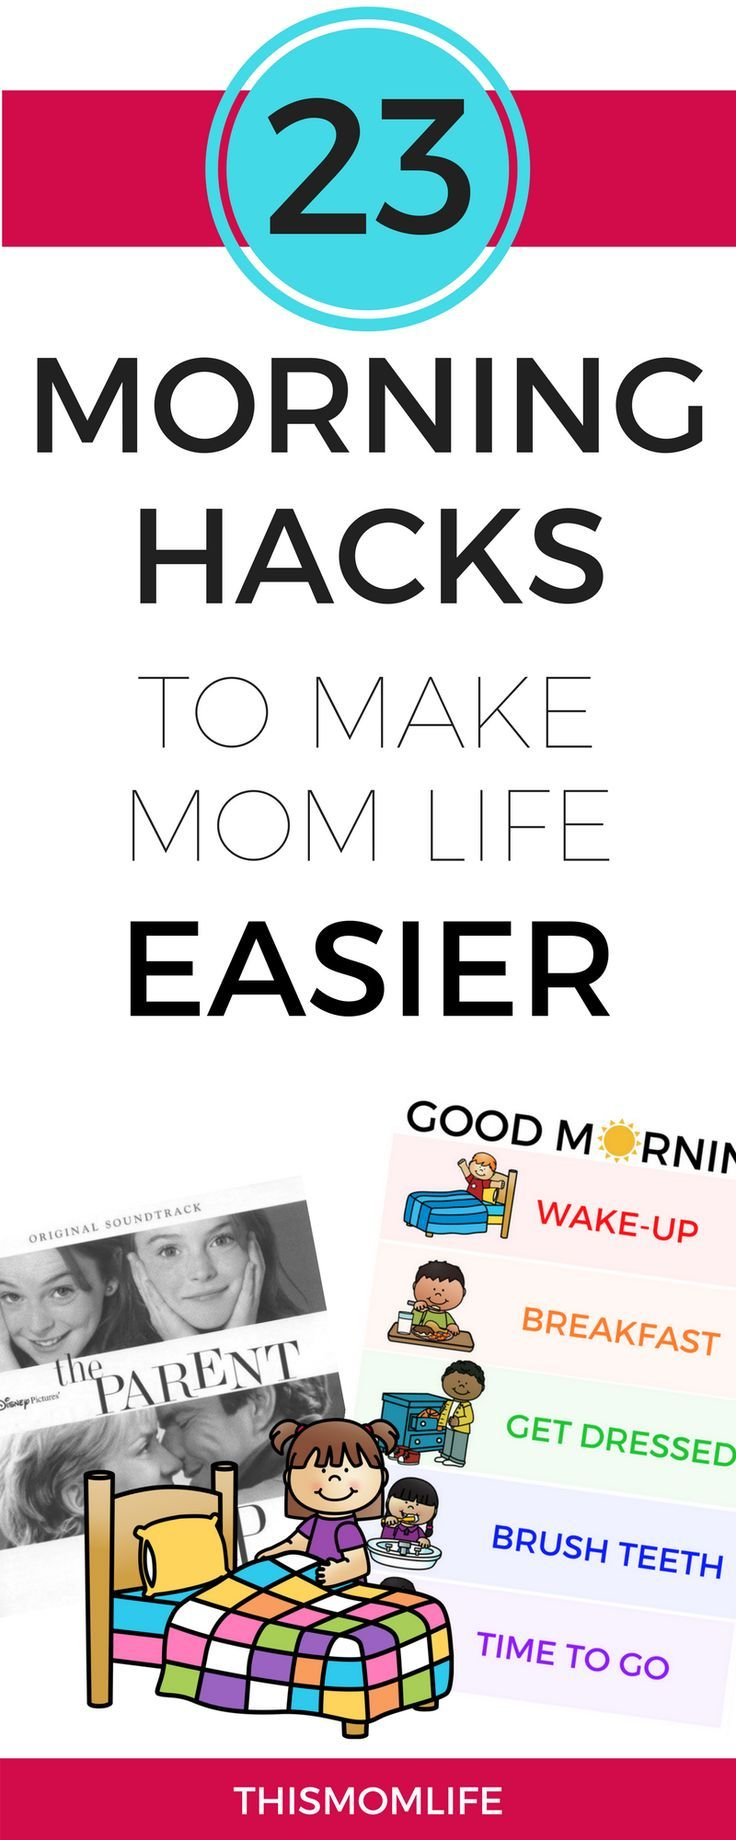 23 Morning Hacks to Make Mom Life Easier, Transform your morning with simple steps